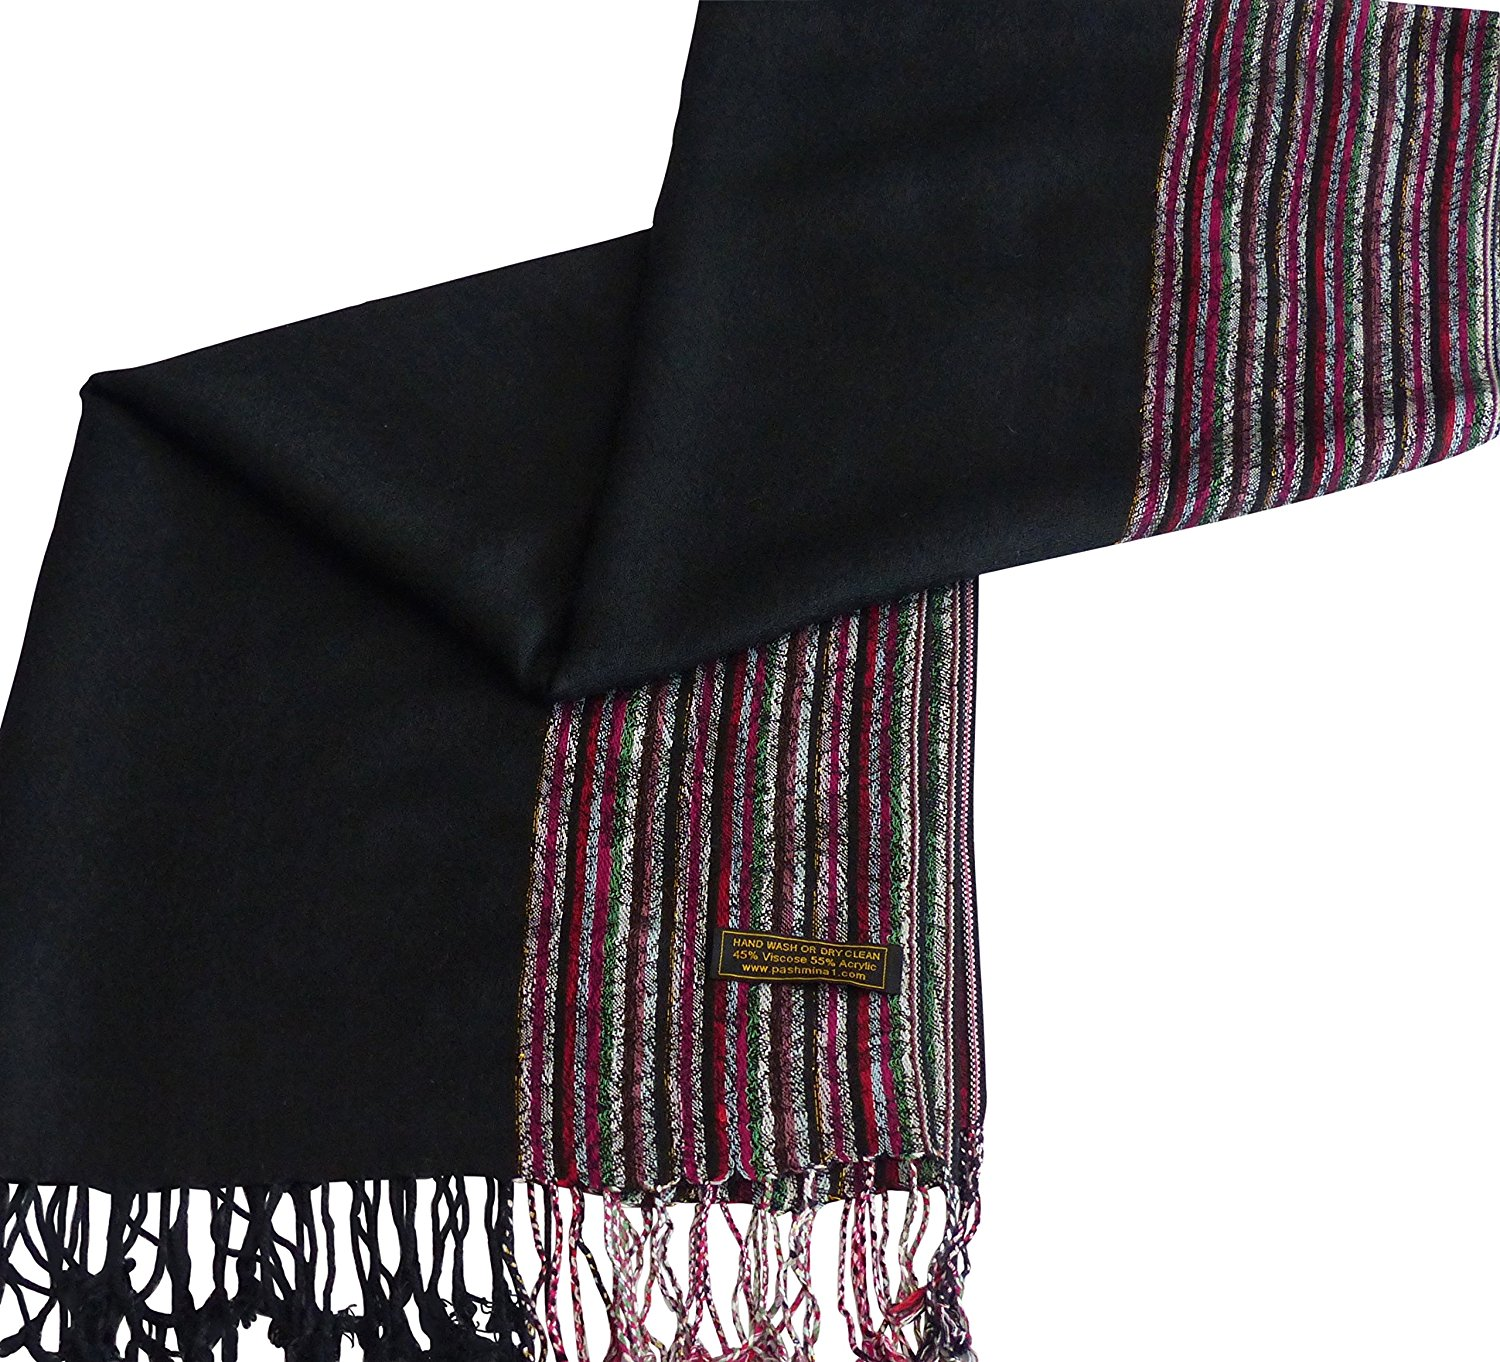 118a044bd Get Quotations · Moire Design Shawl Scarf Wrap Stole Throw Pashmina  Pashminas Shawls Seconds NEW